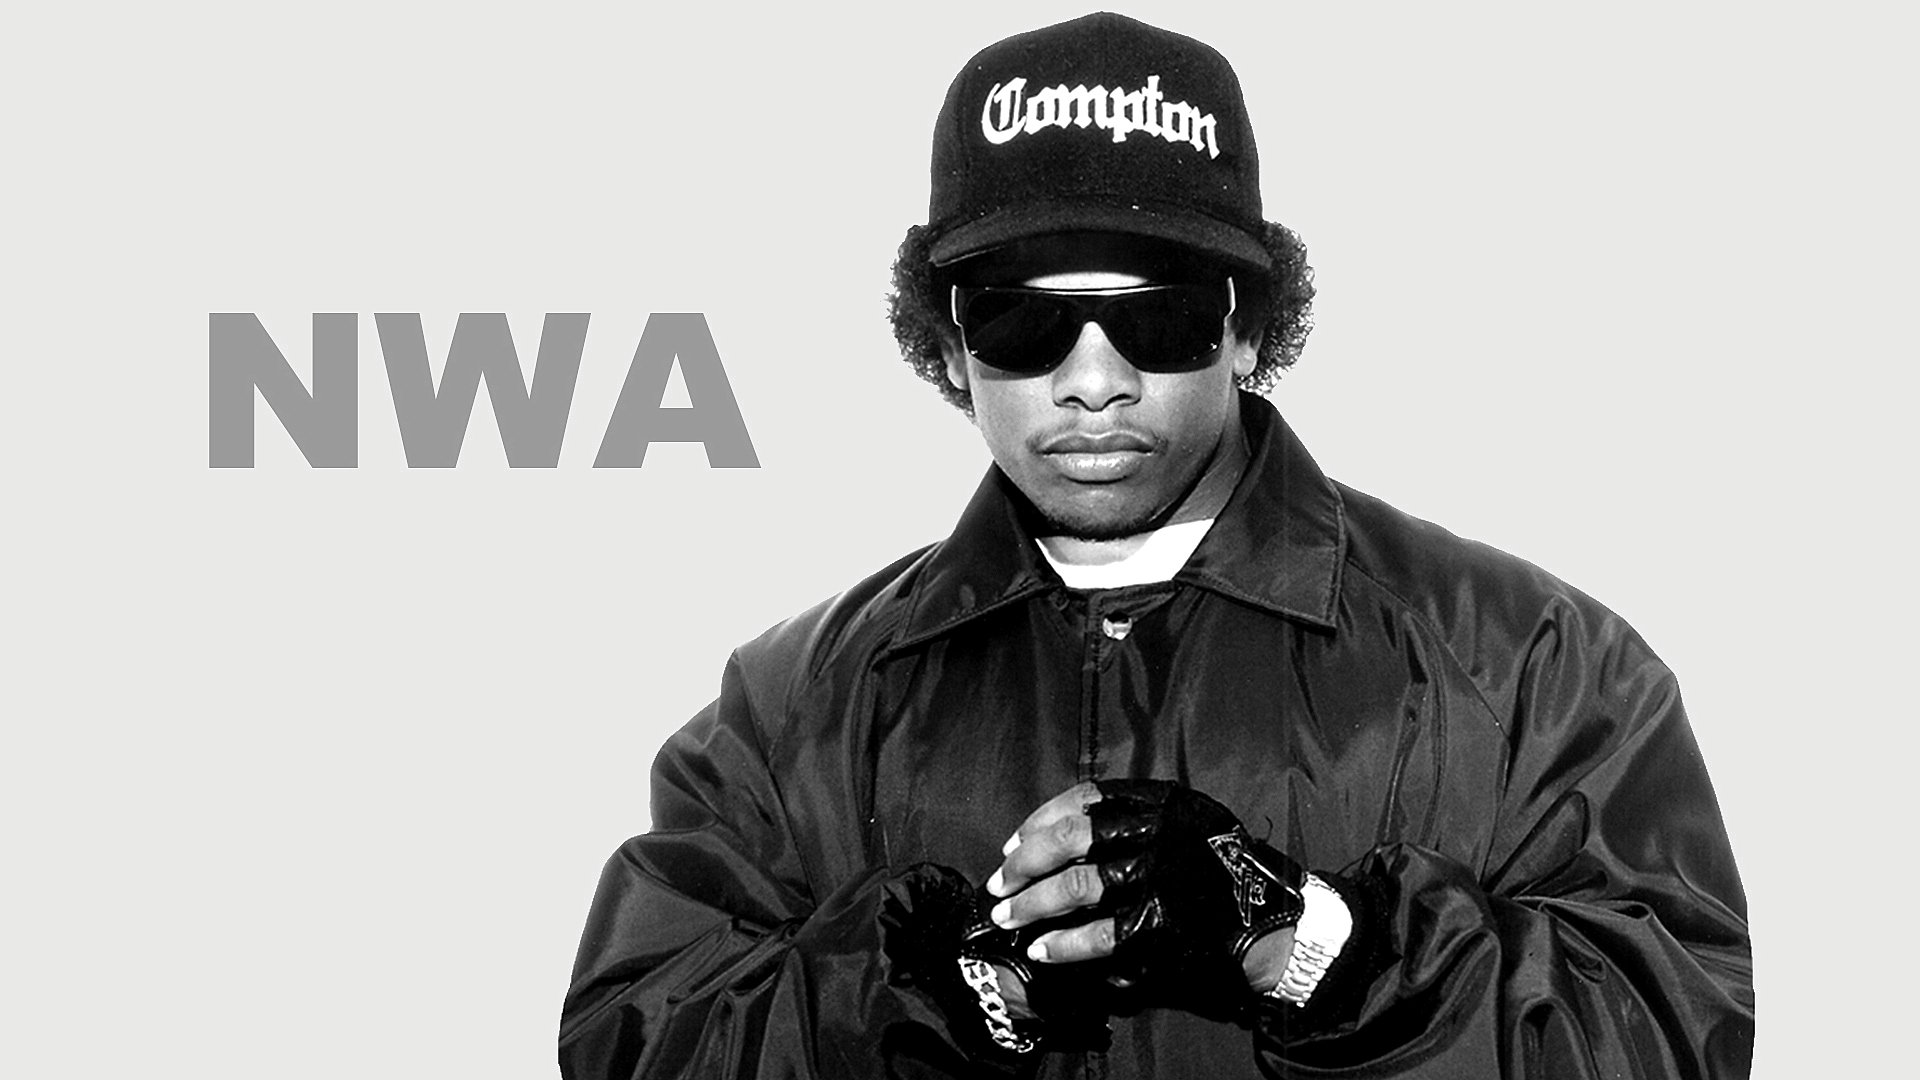 Eazy E Wallpapers Download 86UUDN6   4USkY 1920x1080